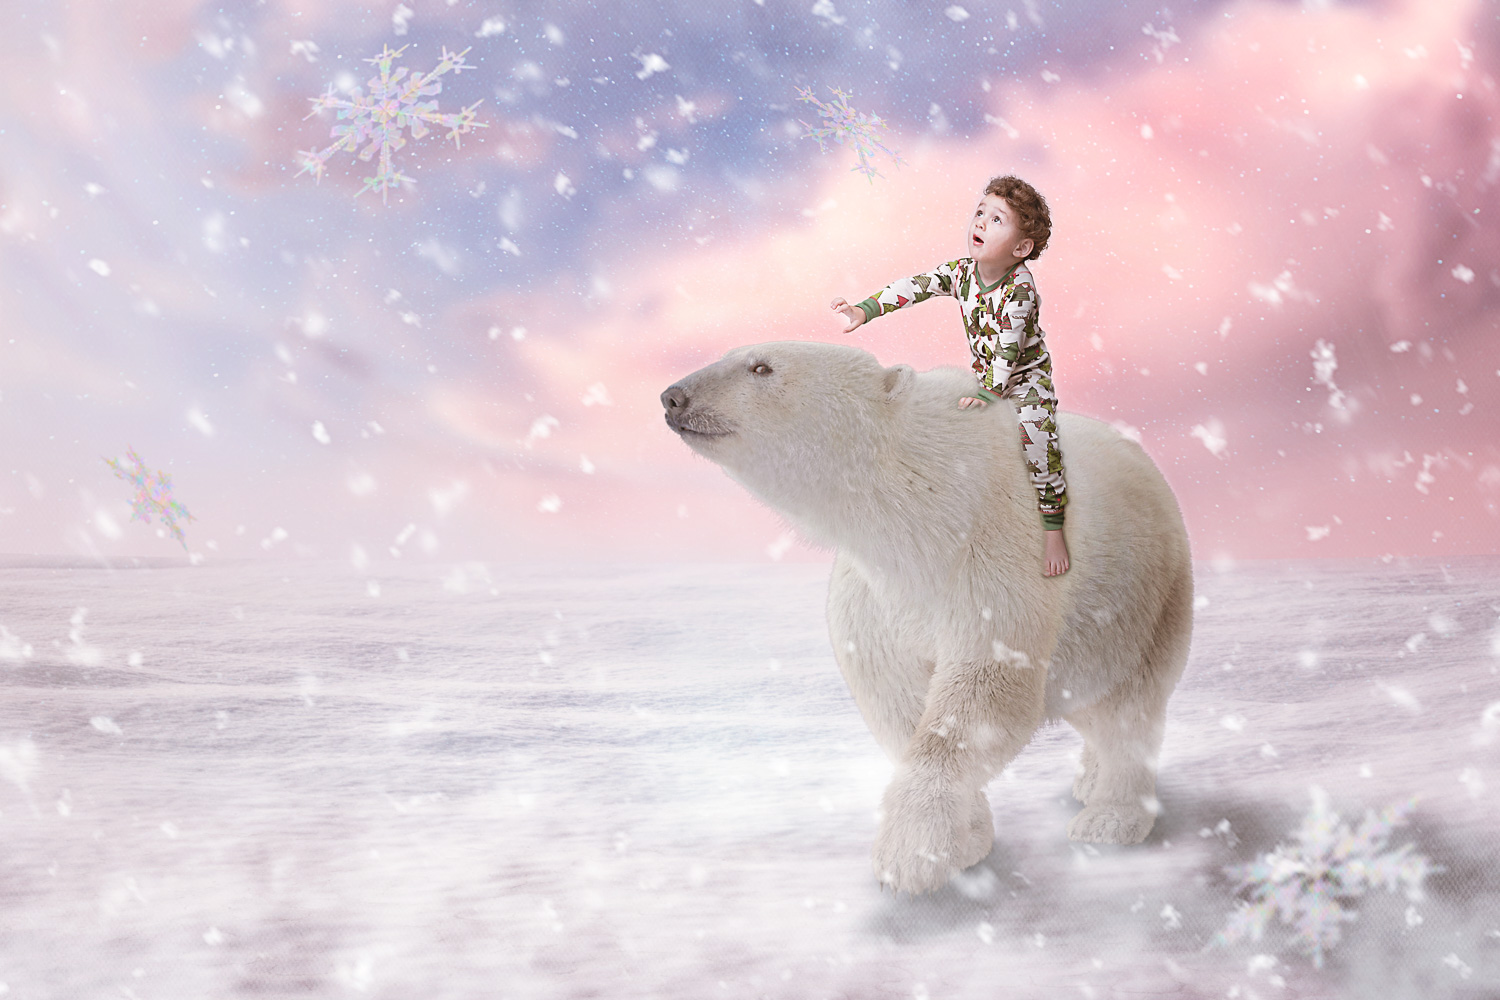 little boy on polar bear watching the snow fall storybook composite